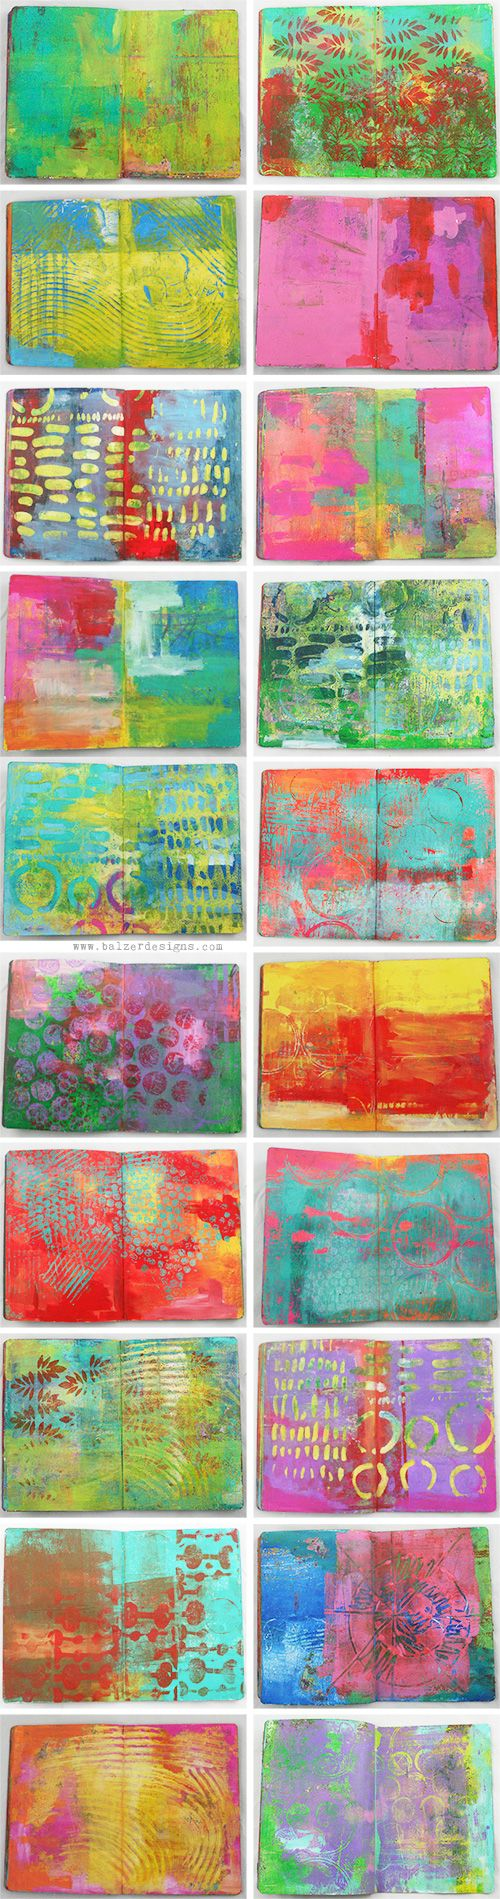 Art Journal Every Day: Gelli Printed Journals